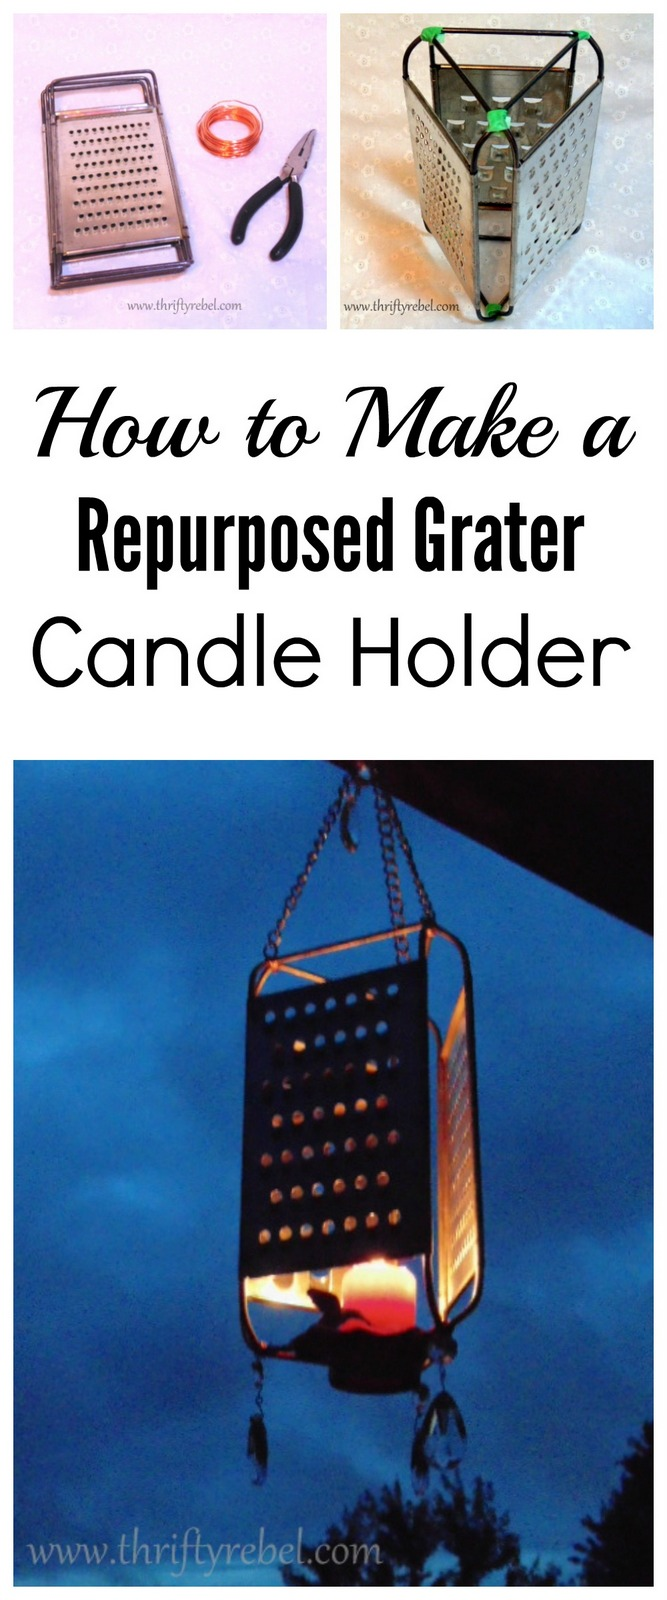 How to make a repurposed grater candle holder